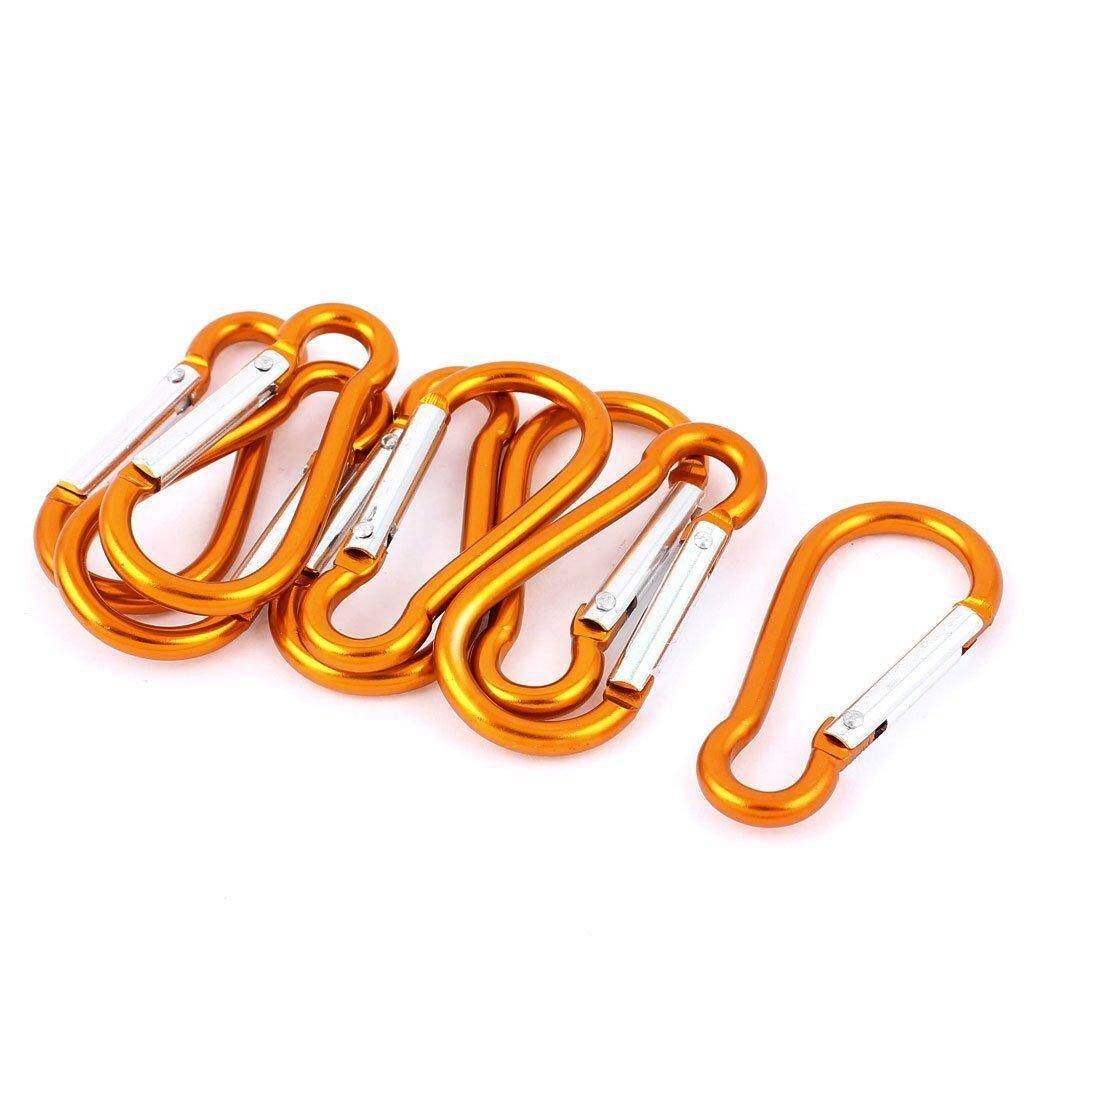 Hiking Clip Carabiner Hook Keychain Carabiner Key Holder 8 Pieces Orange By Ertic.